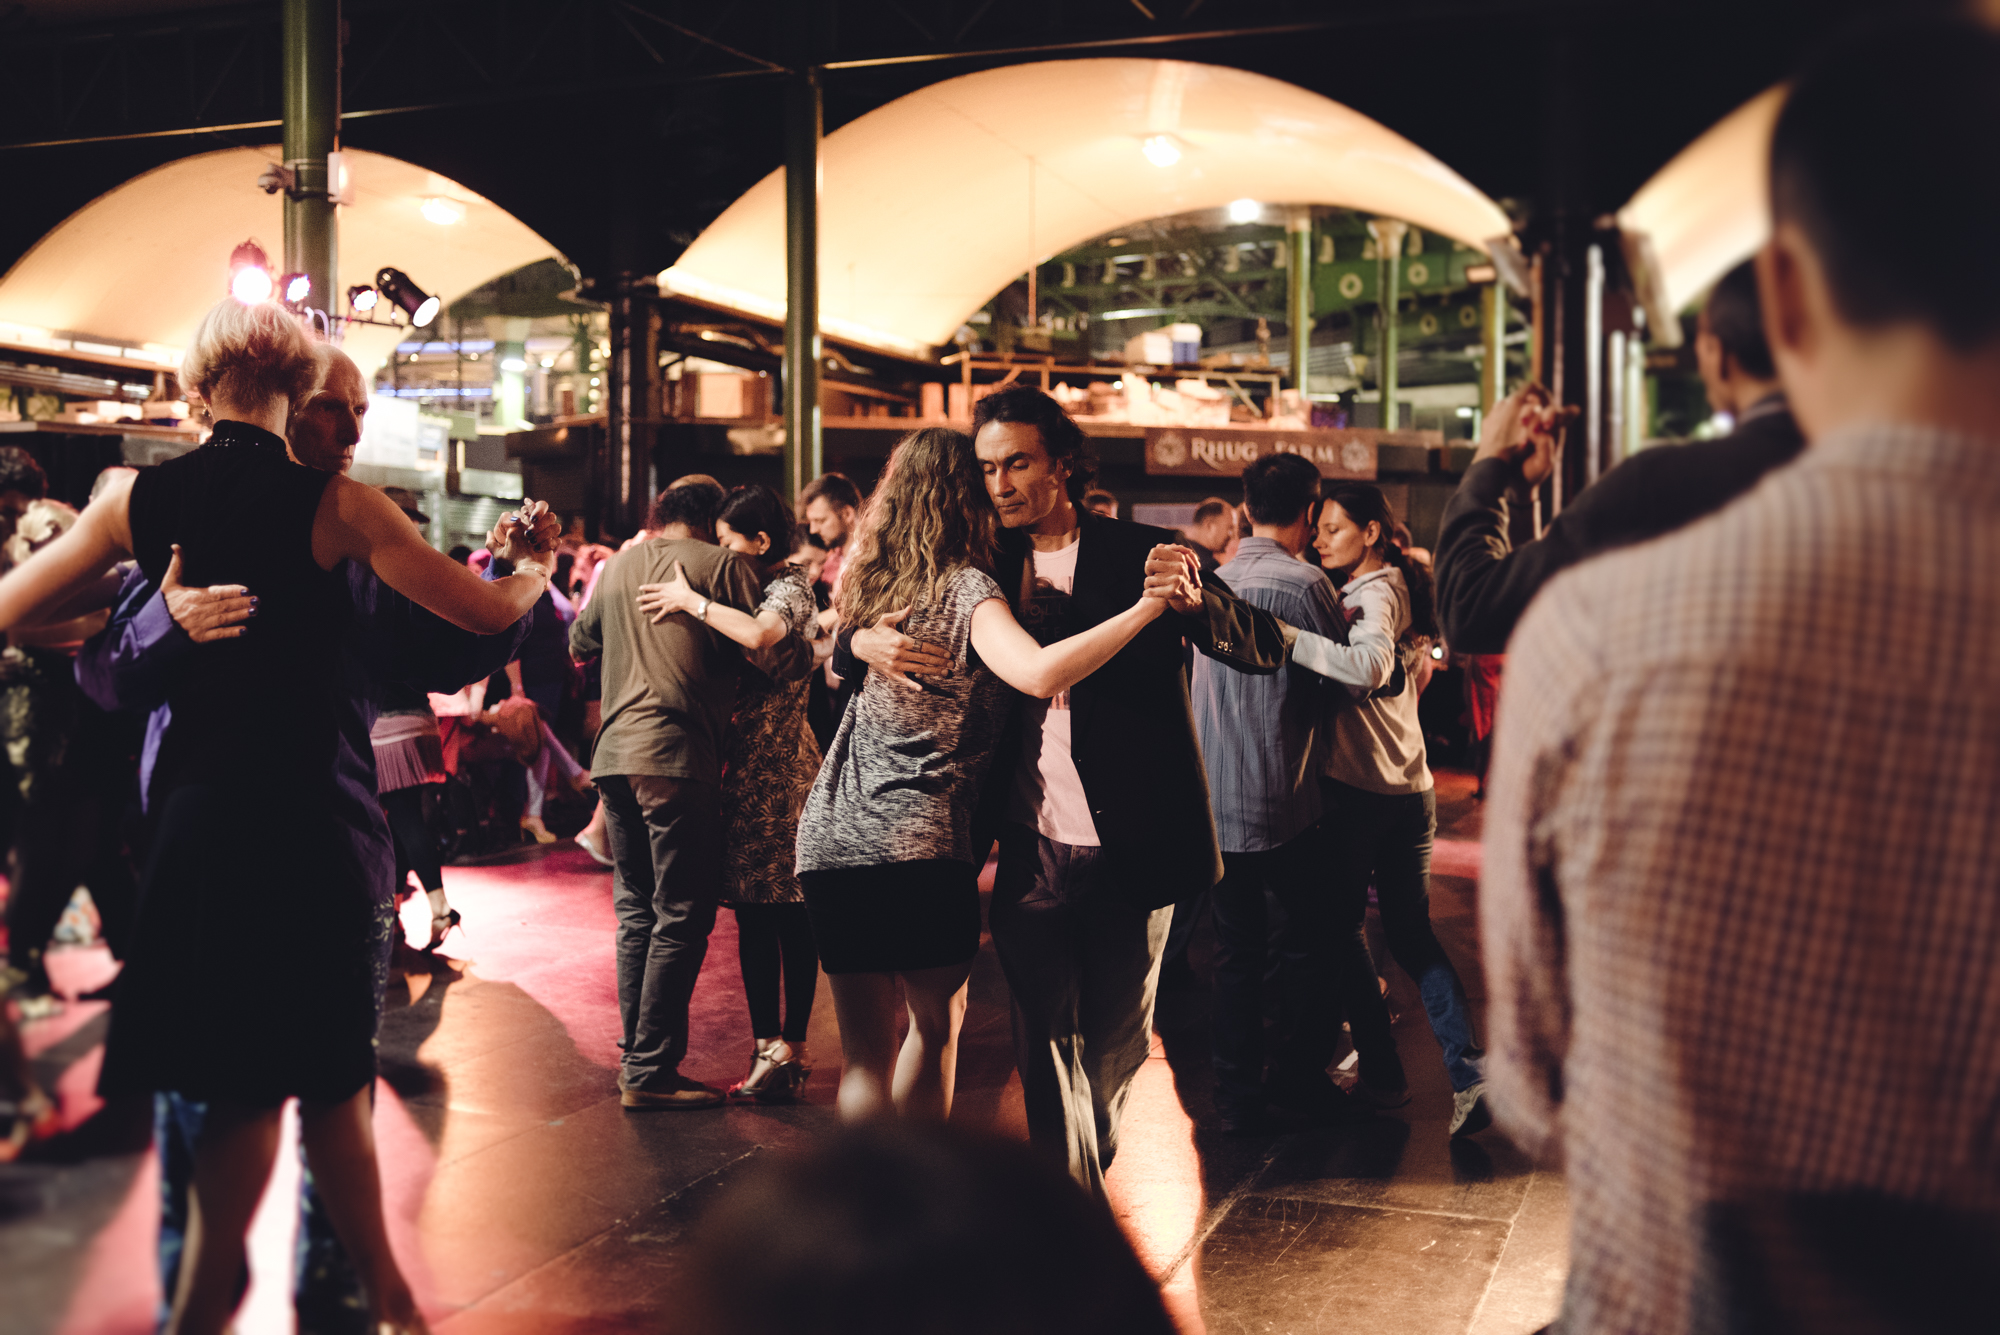 London borough market dancing